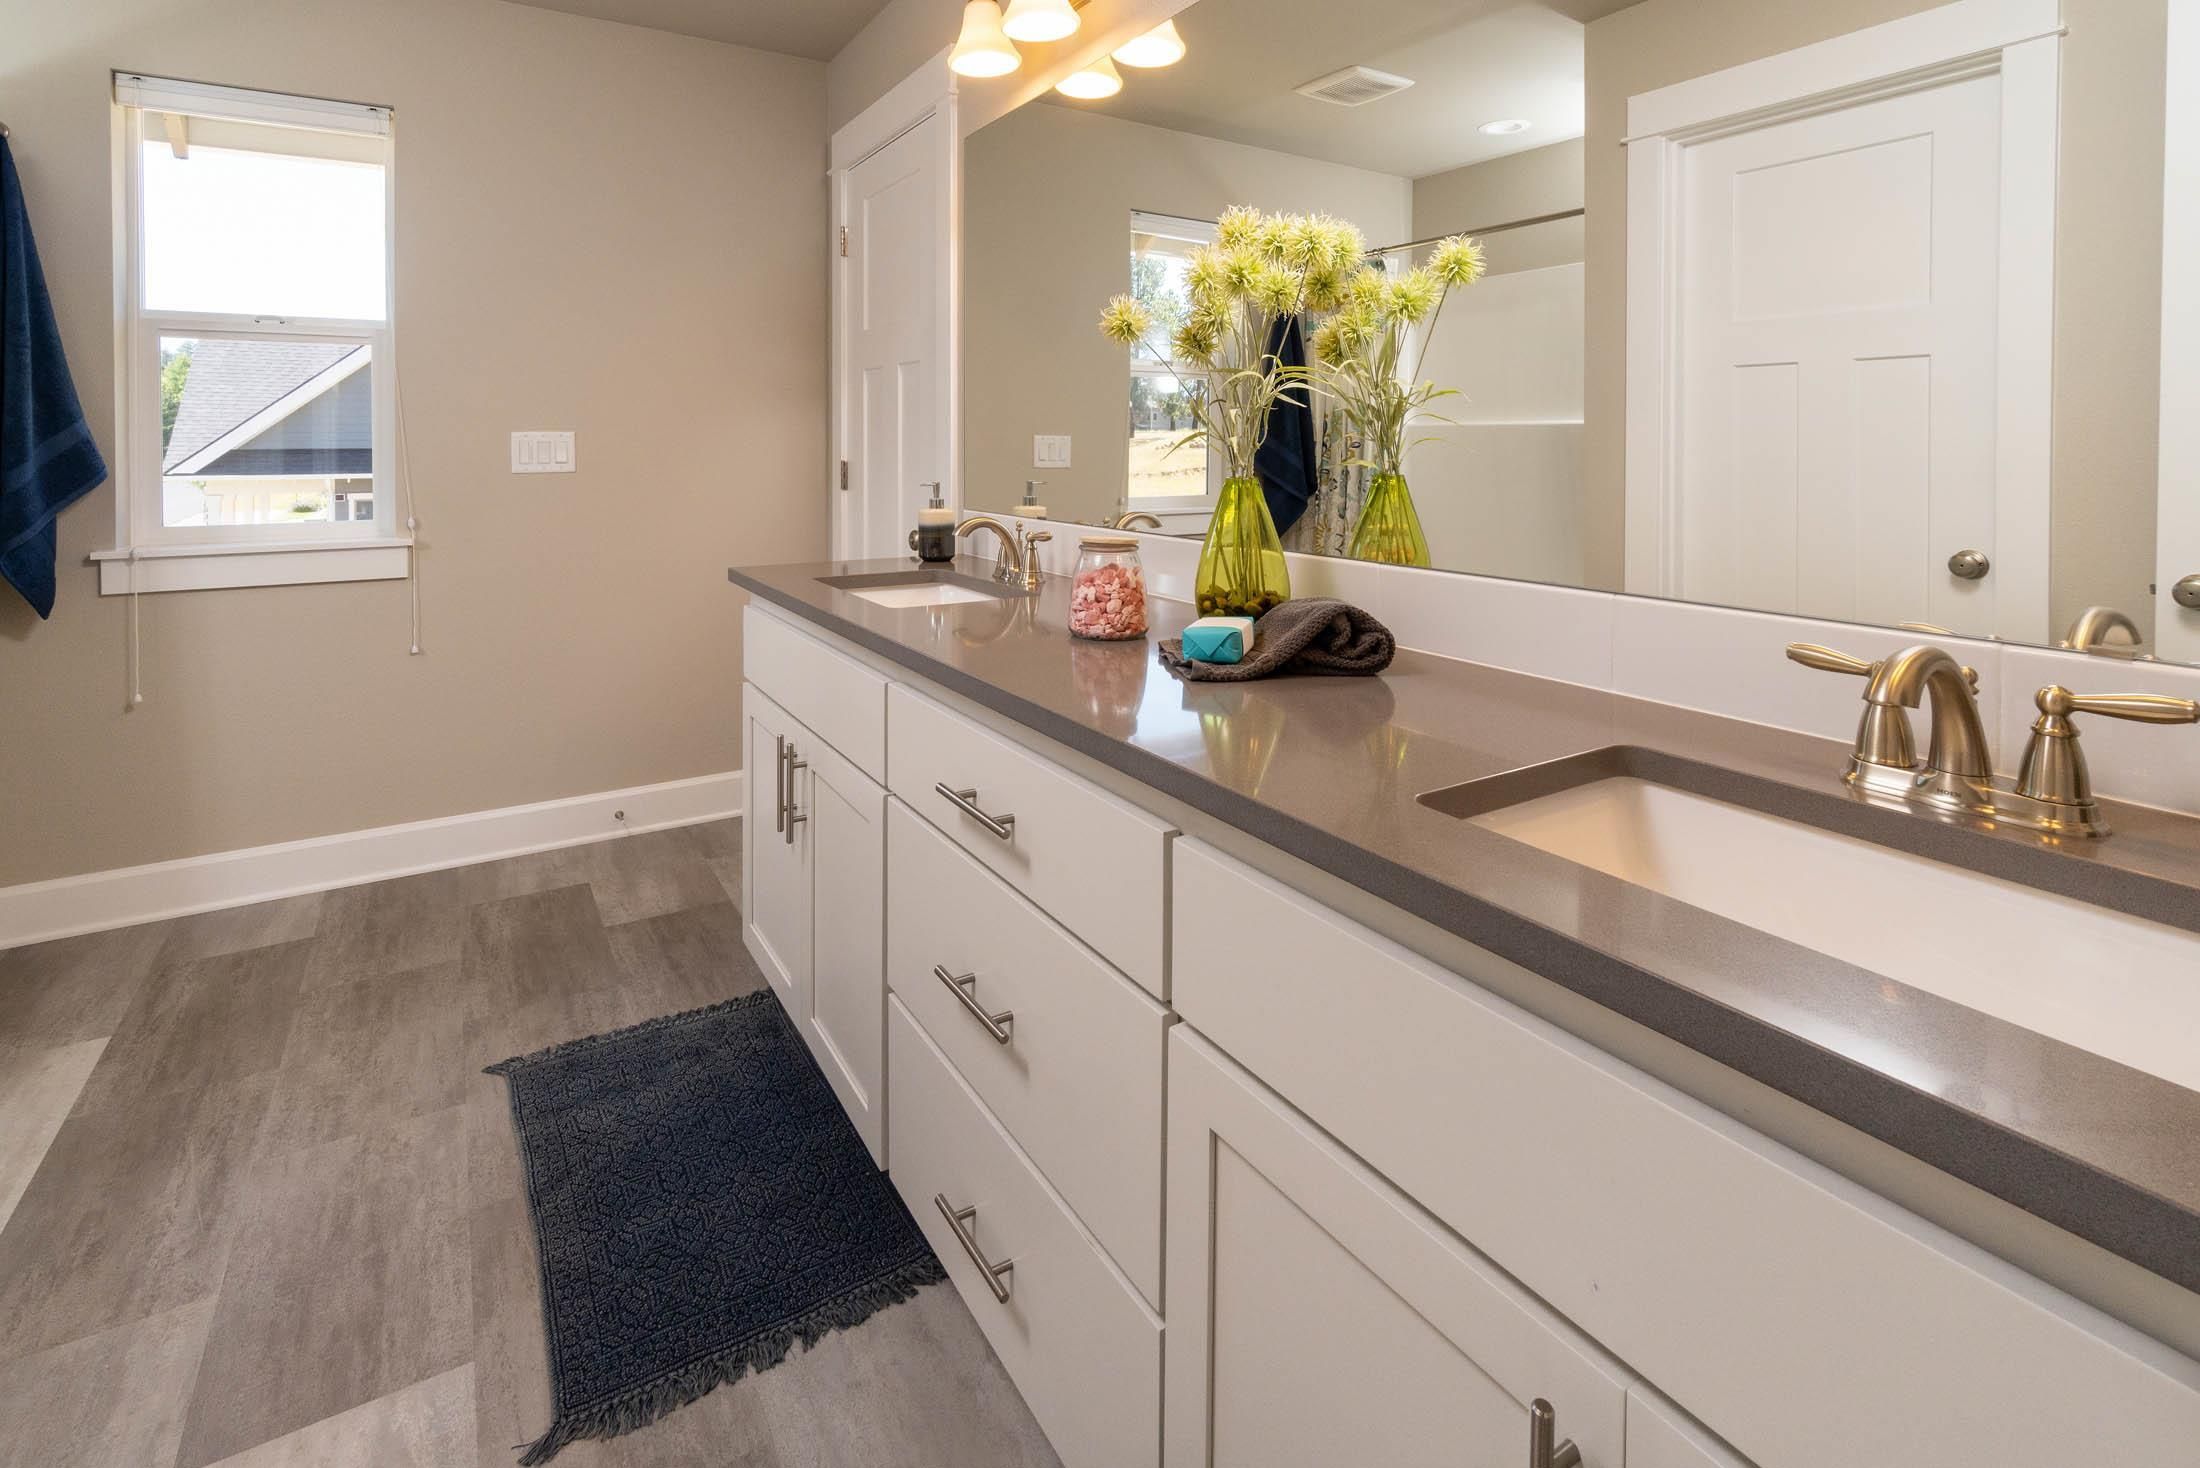 Bathroom featured in The Ponderosa By Woodhill Homes in Central Oregon, OR